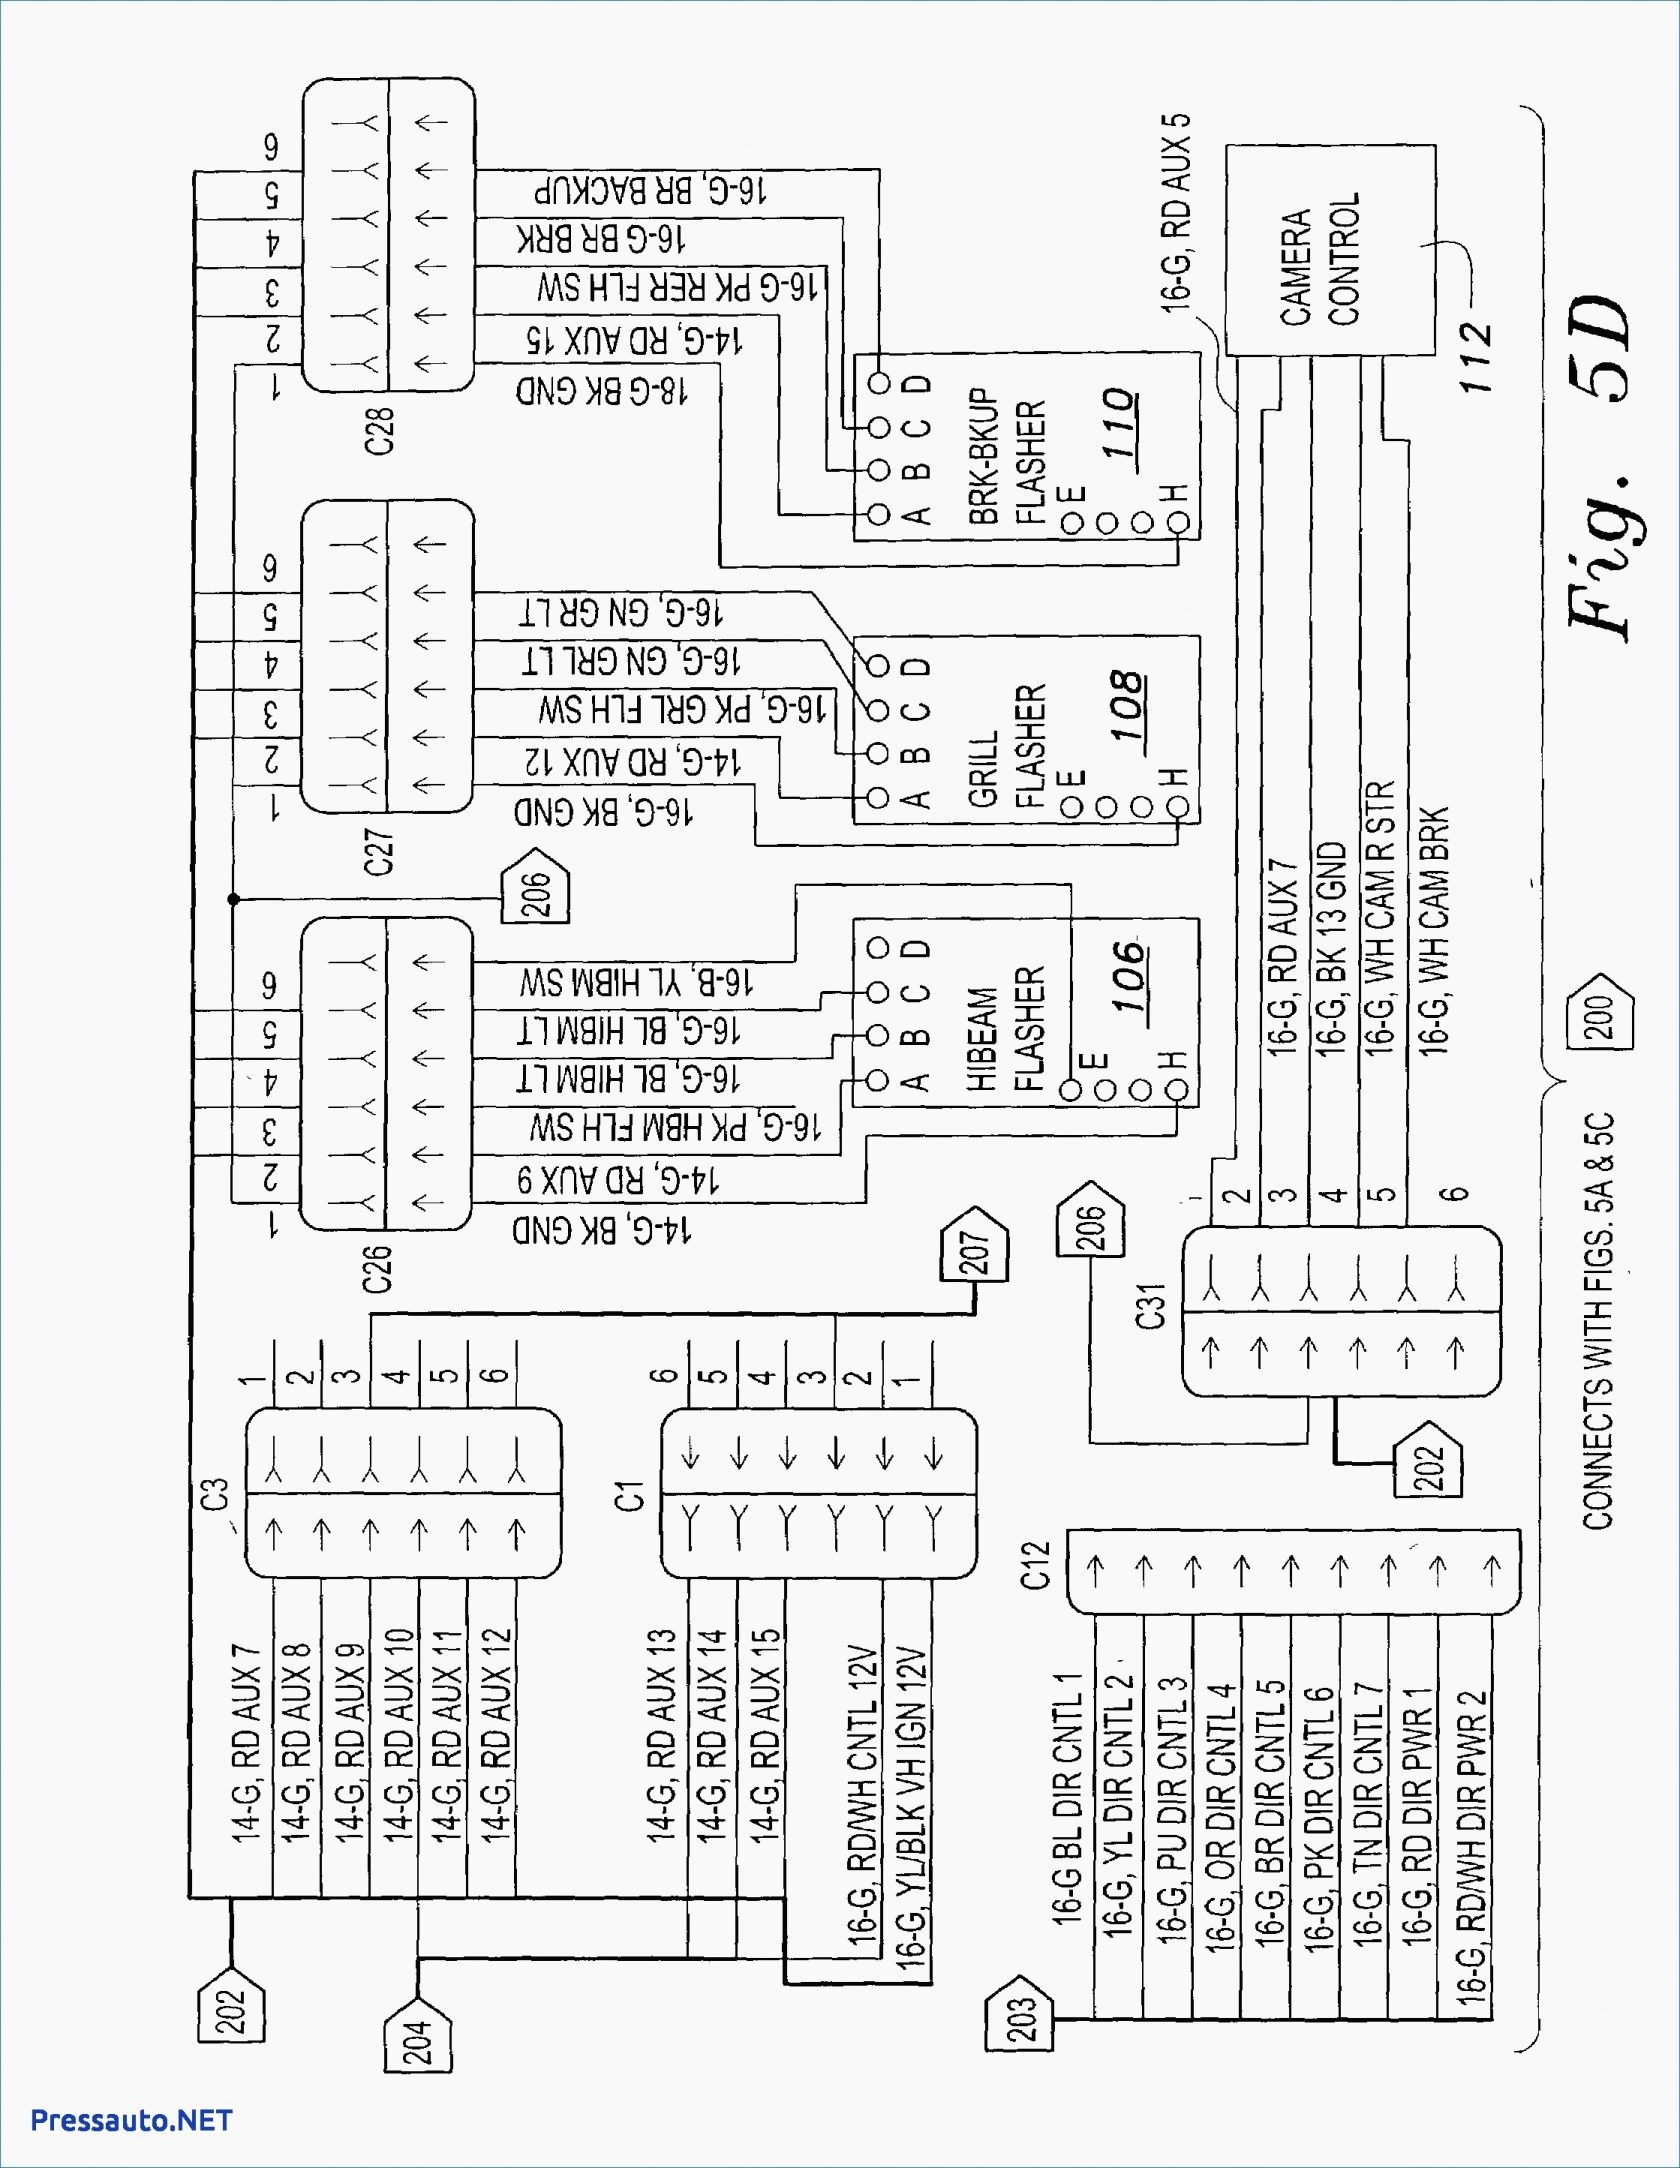 Kenwood Dnx7120 Wiring Diagram from mainetreasurechest.com